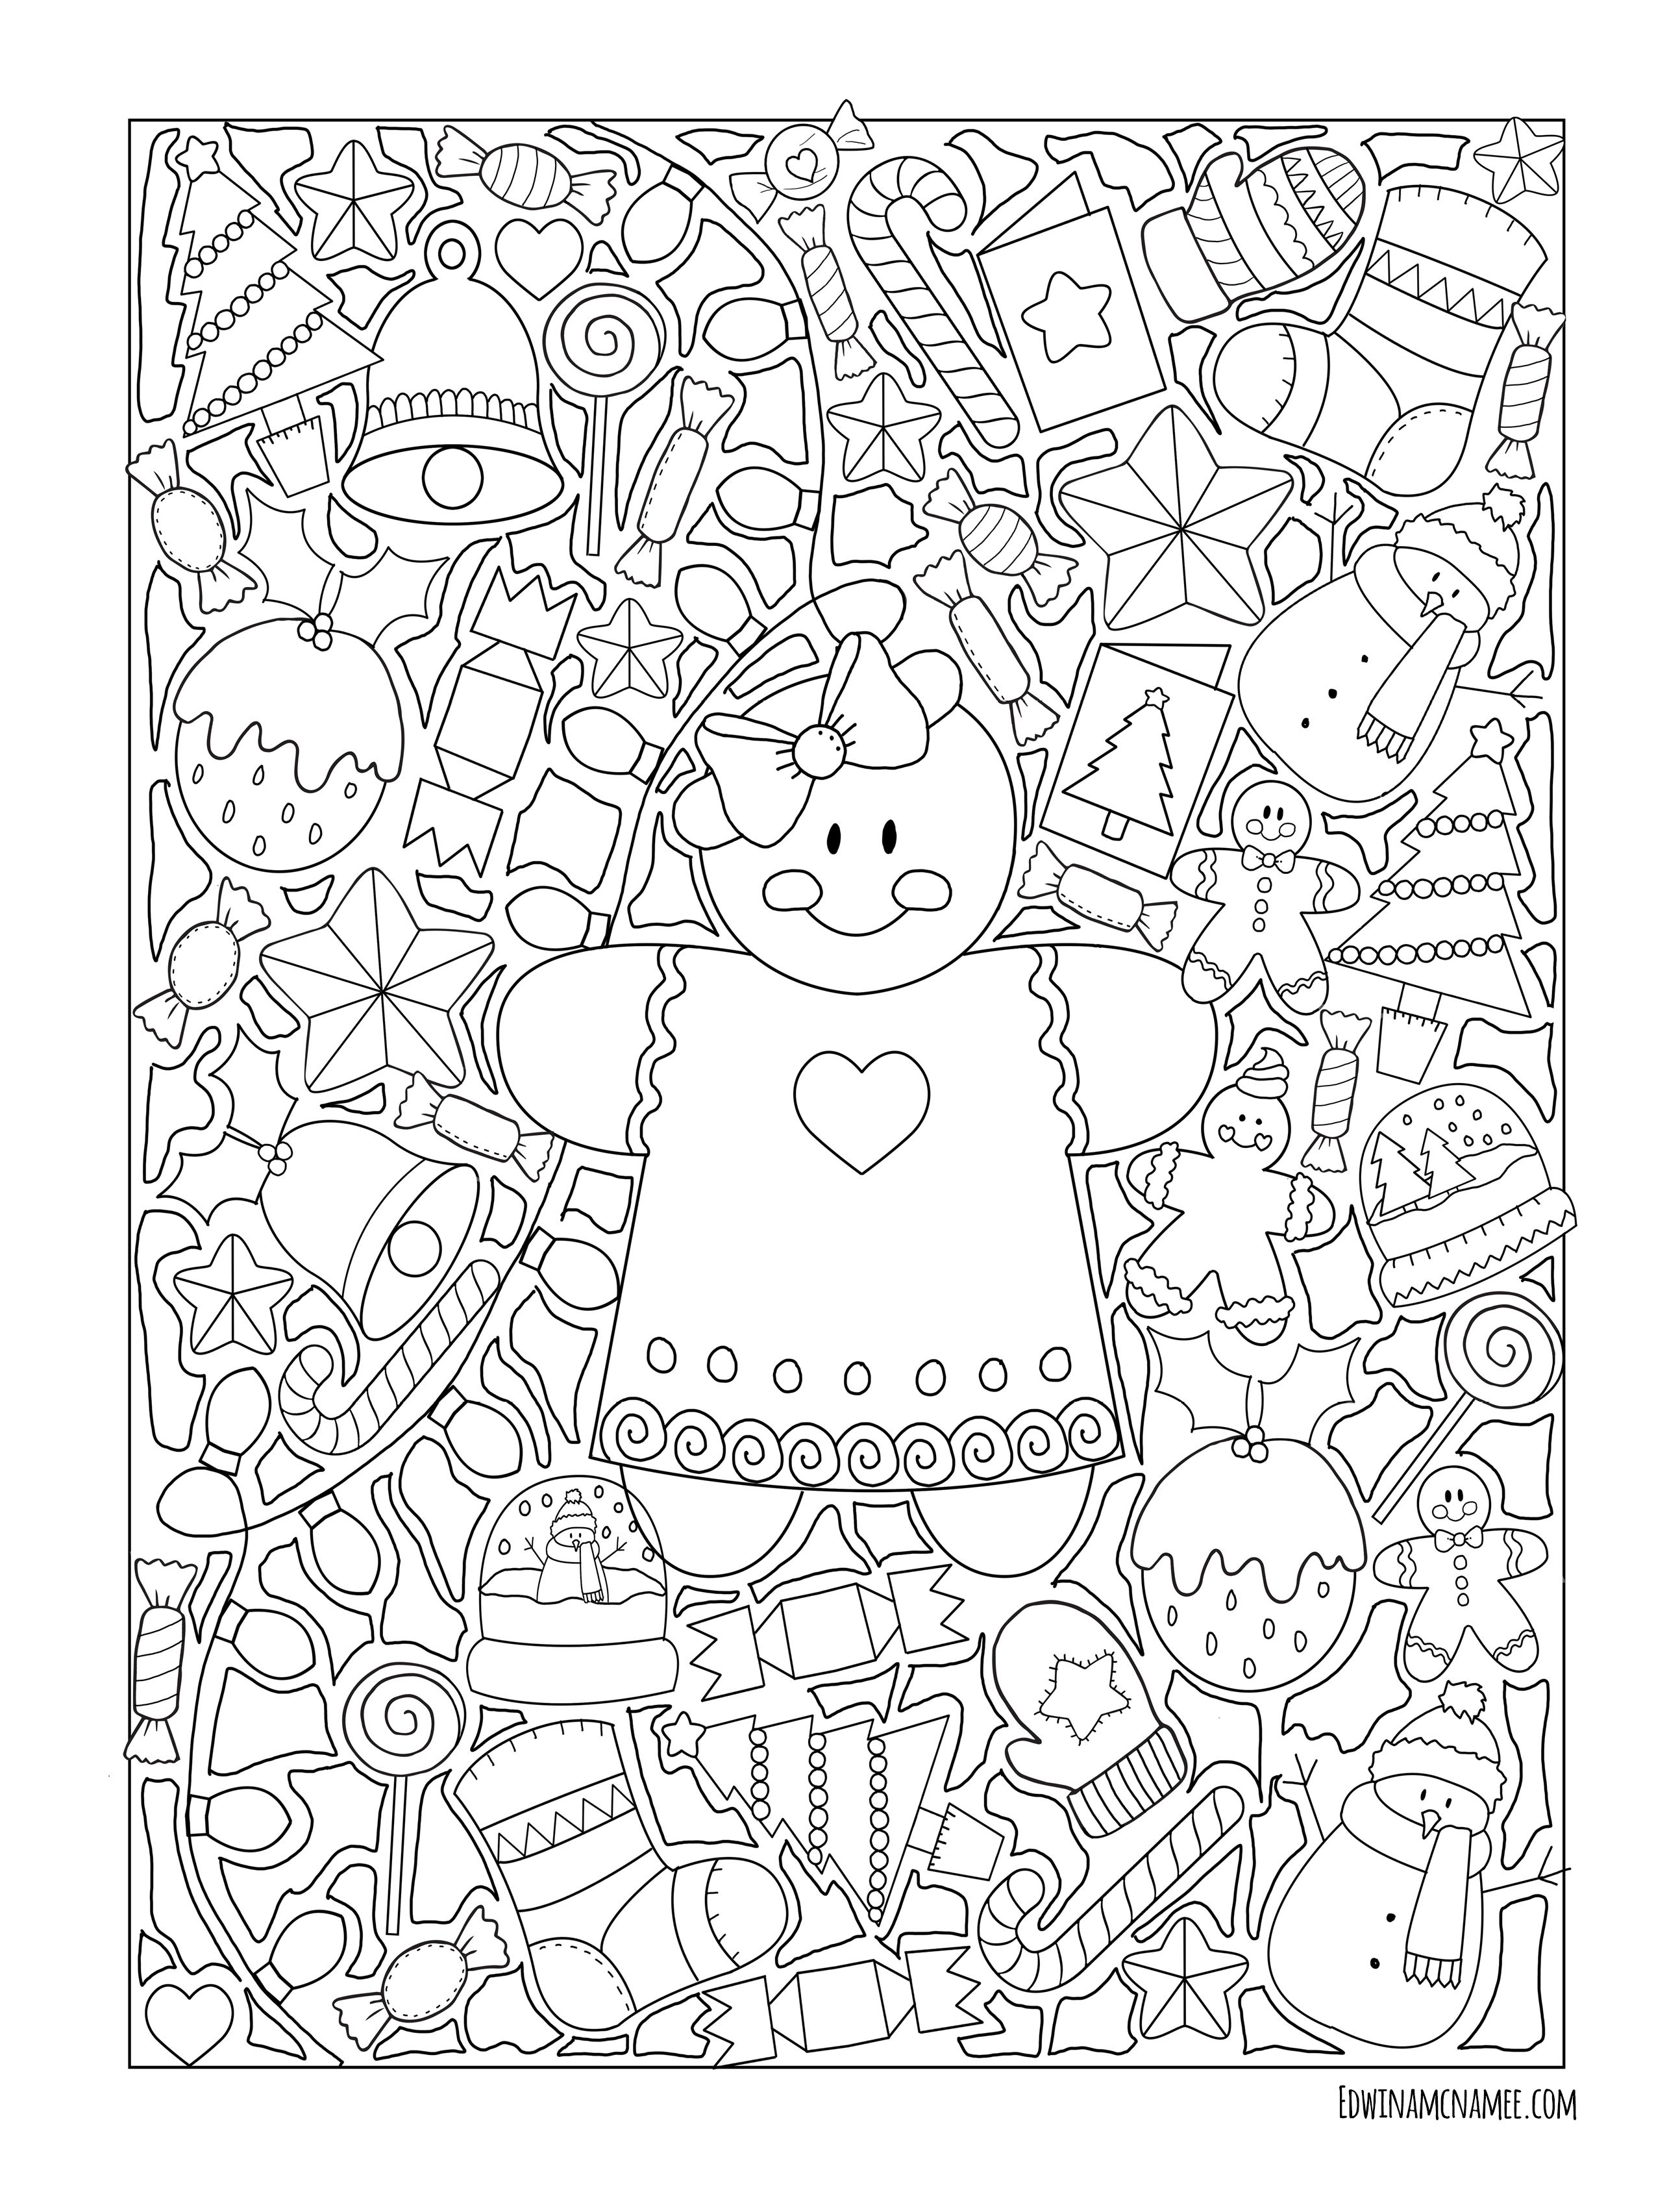 christmas freebies – Edwina Mc namee  Christmas coloring pages